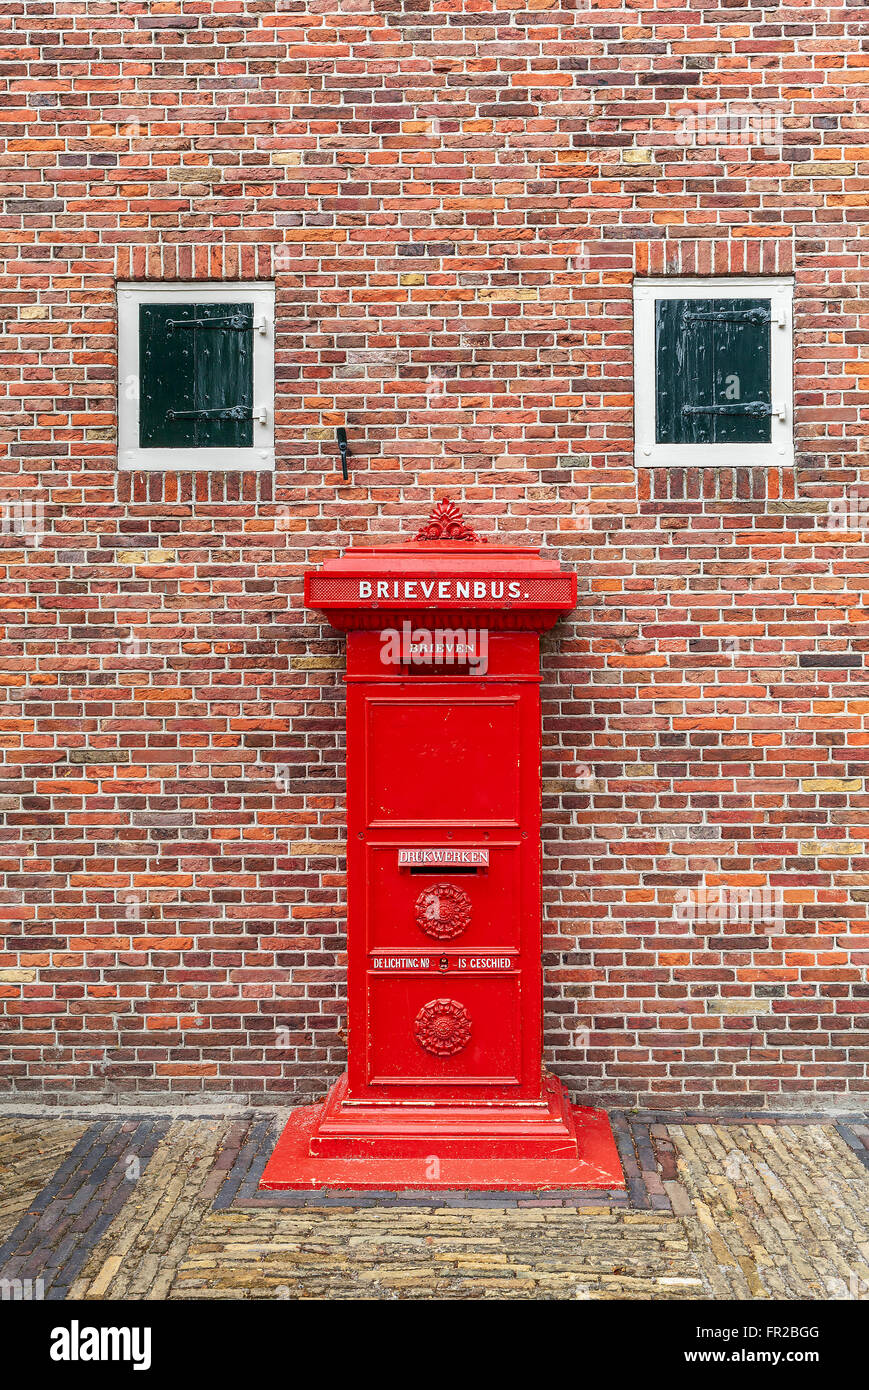 Old red postbox in front of brick wall in Zaanse Schans, Netherlands. - Stock Image